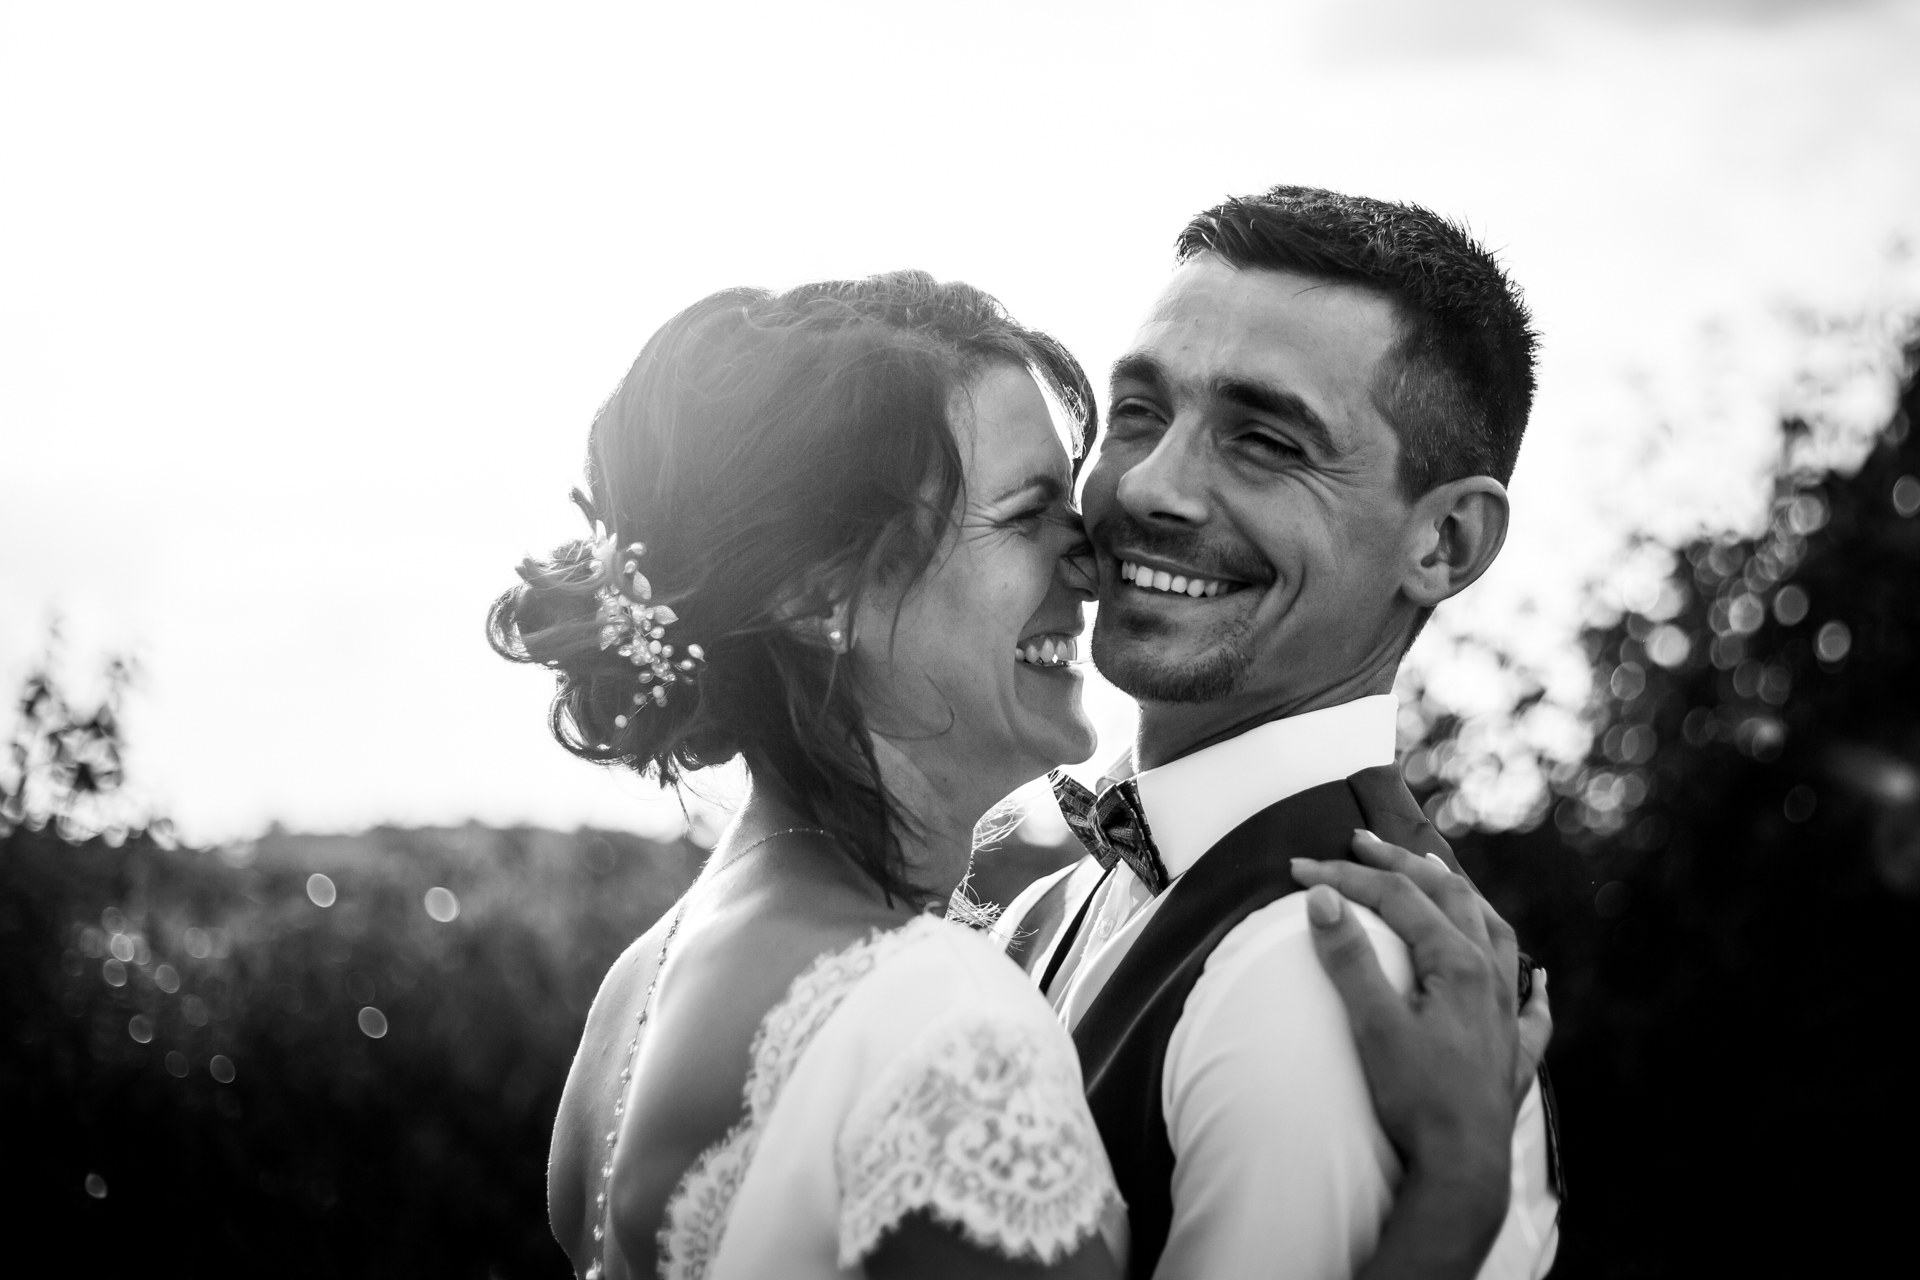 Romantic Wedding Portrait from Tarn France | a small couple portrait session in black and white